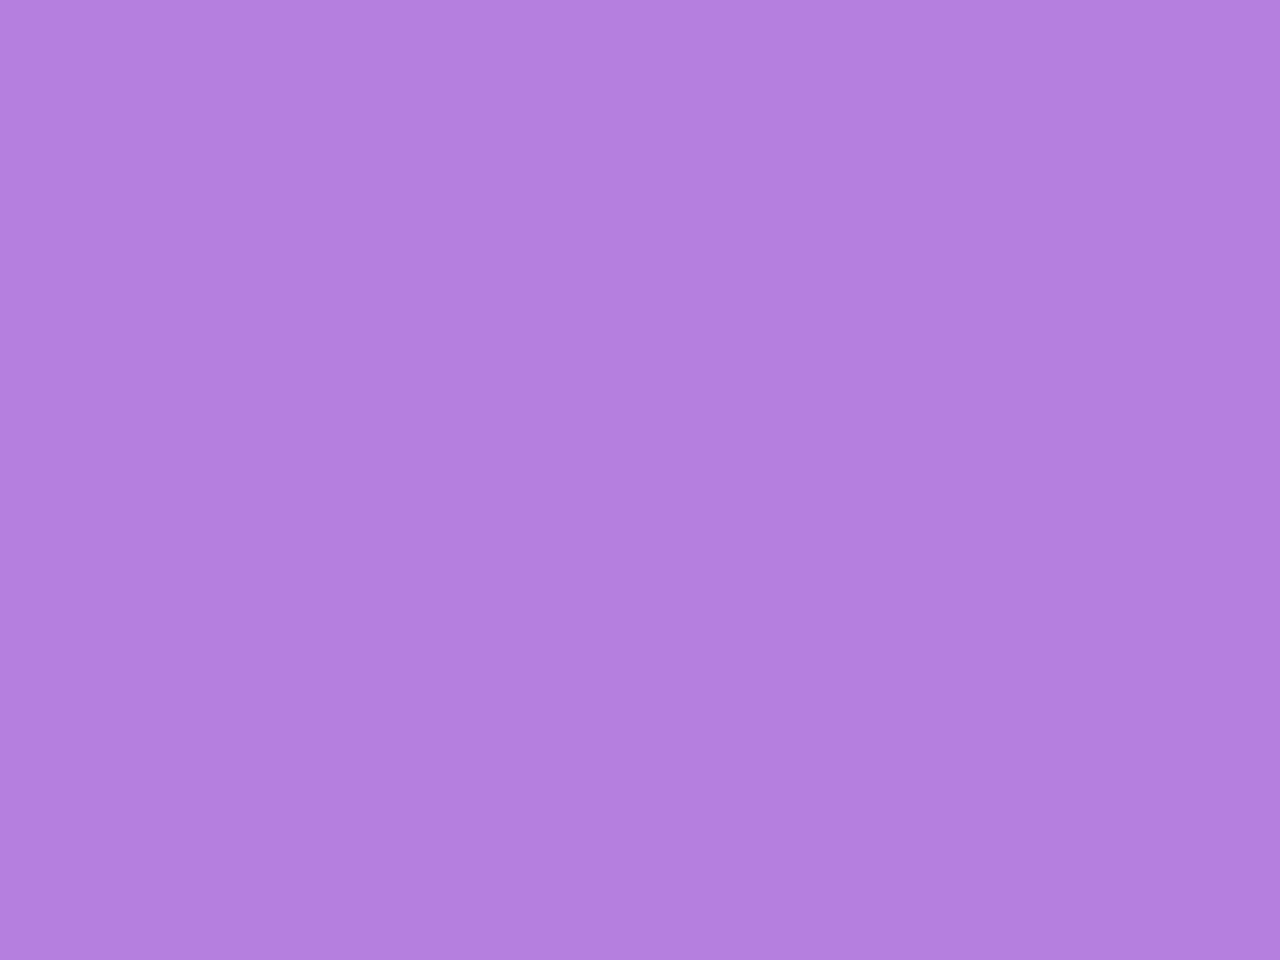 1280x960 Lavender Floral Solid Color Background